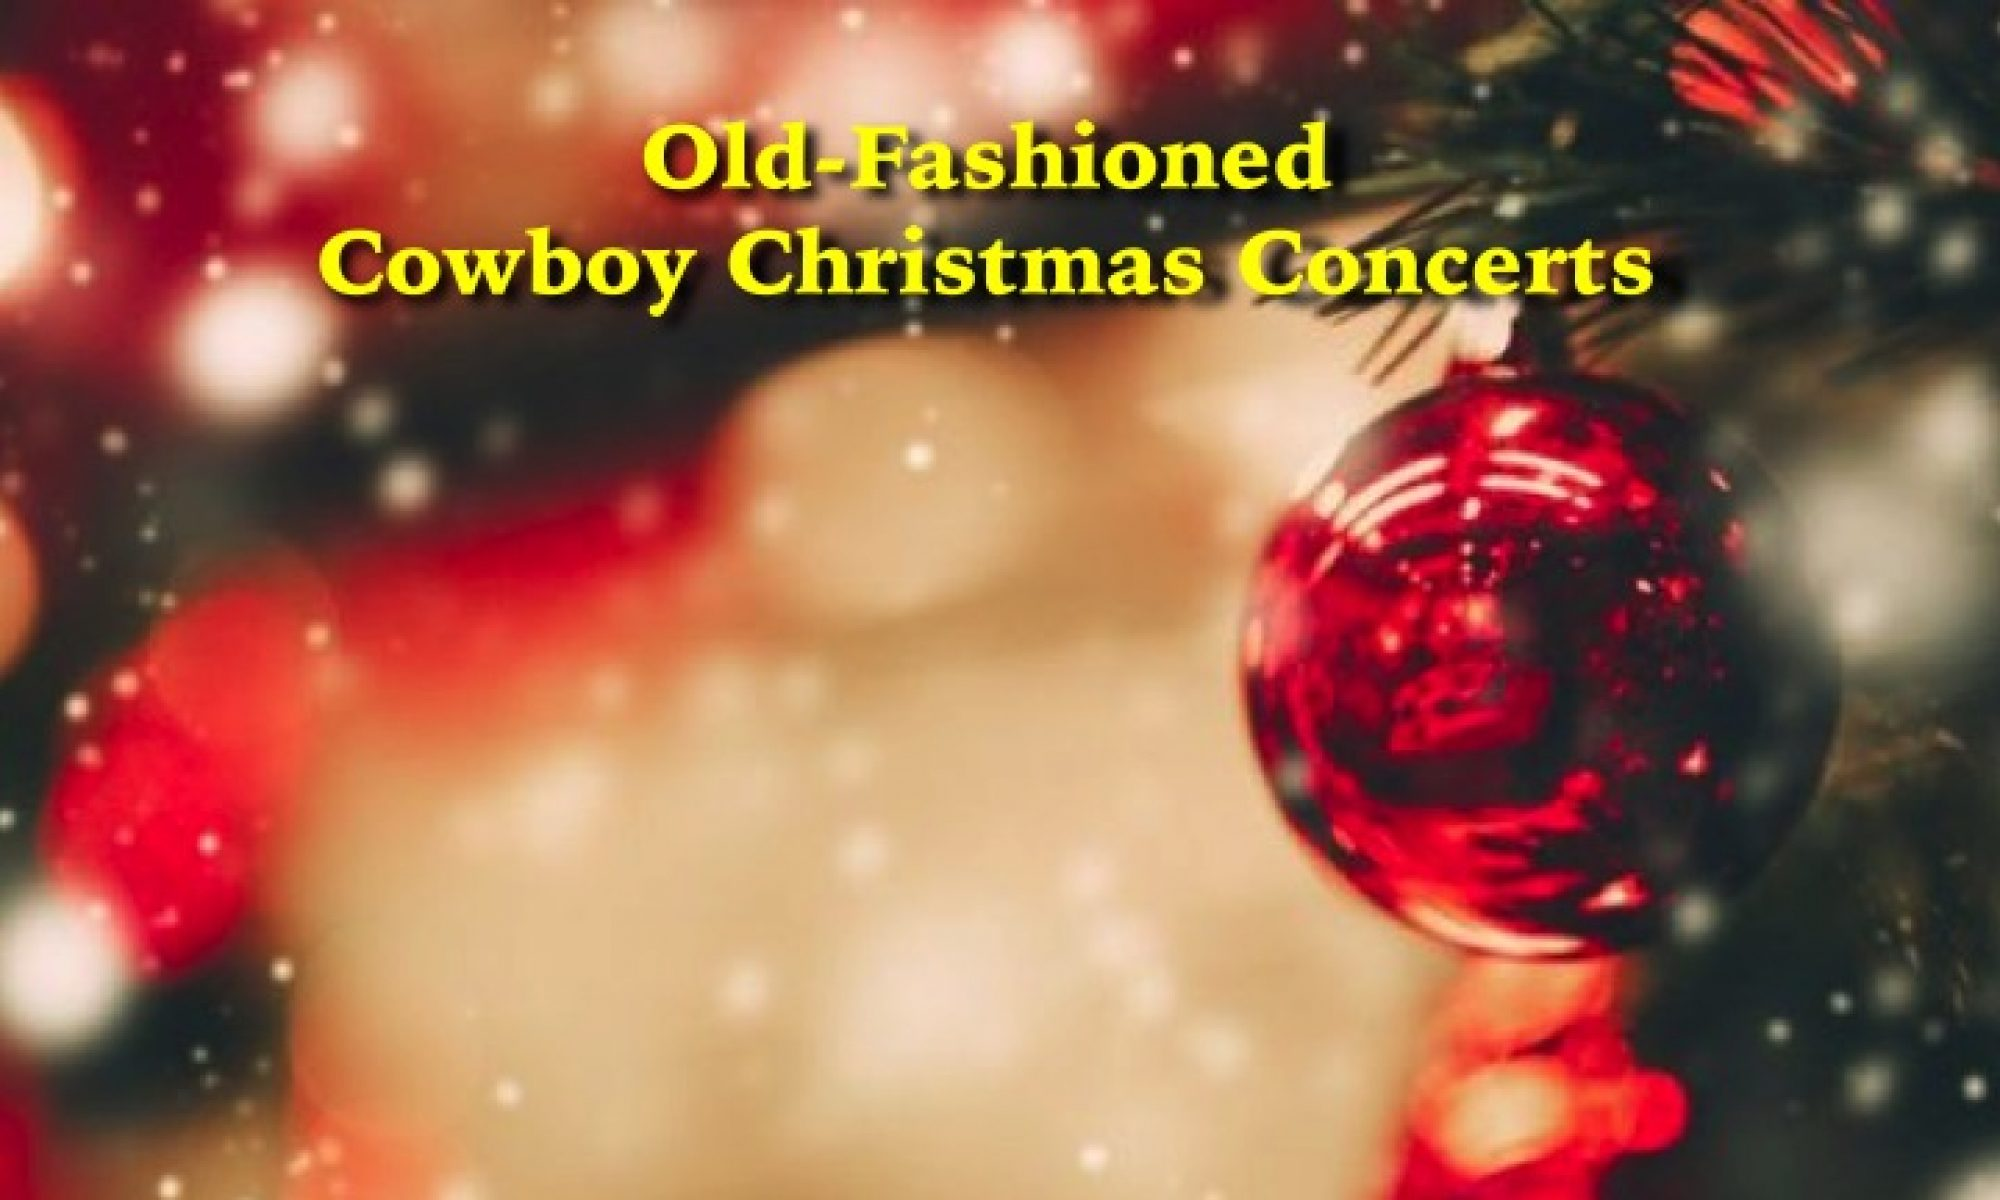 Christmas Concerts.Cowboy Christmas Concerts Old Fashioned Cowboy Christmas